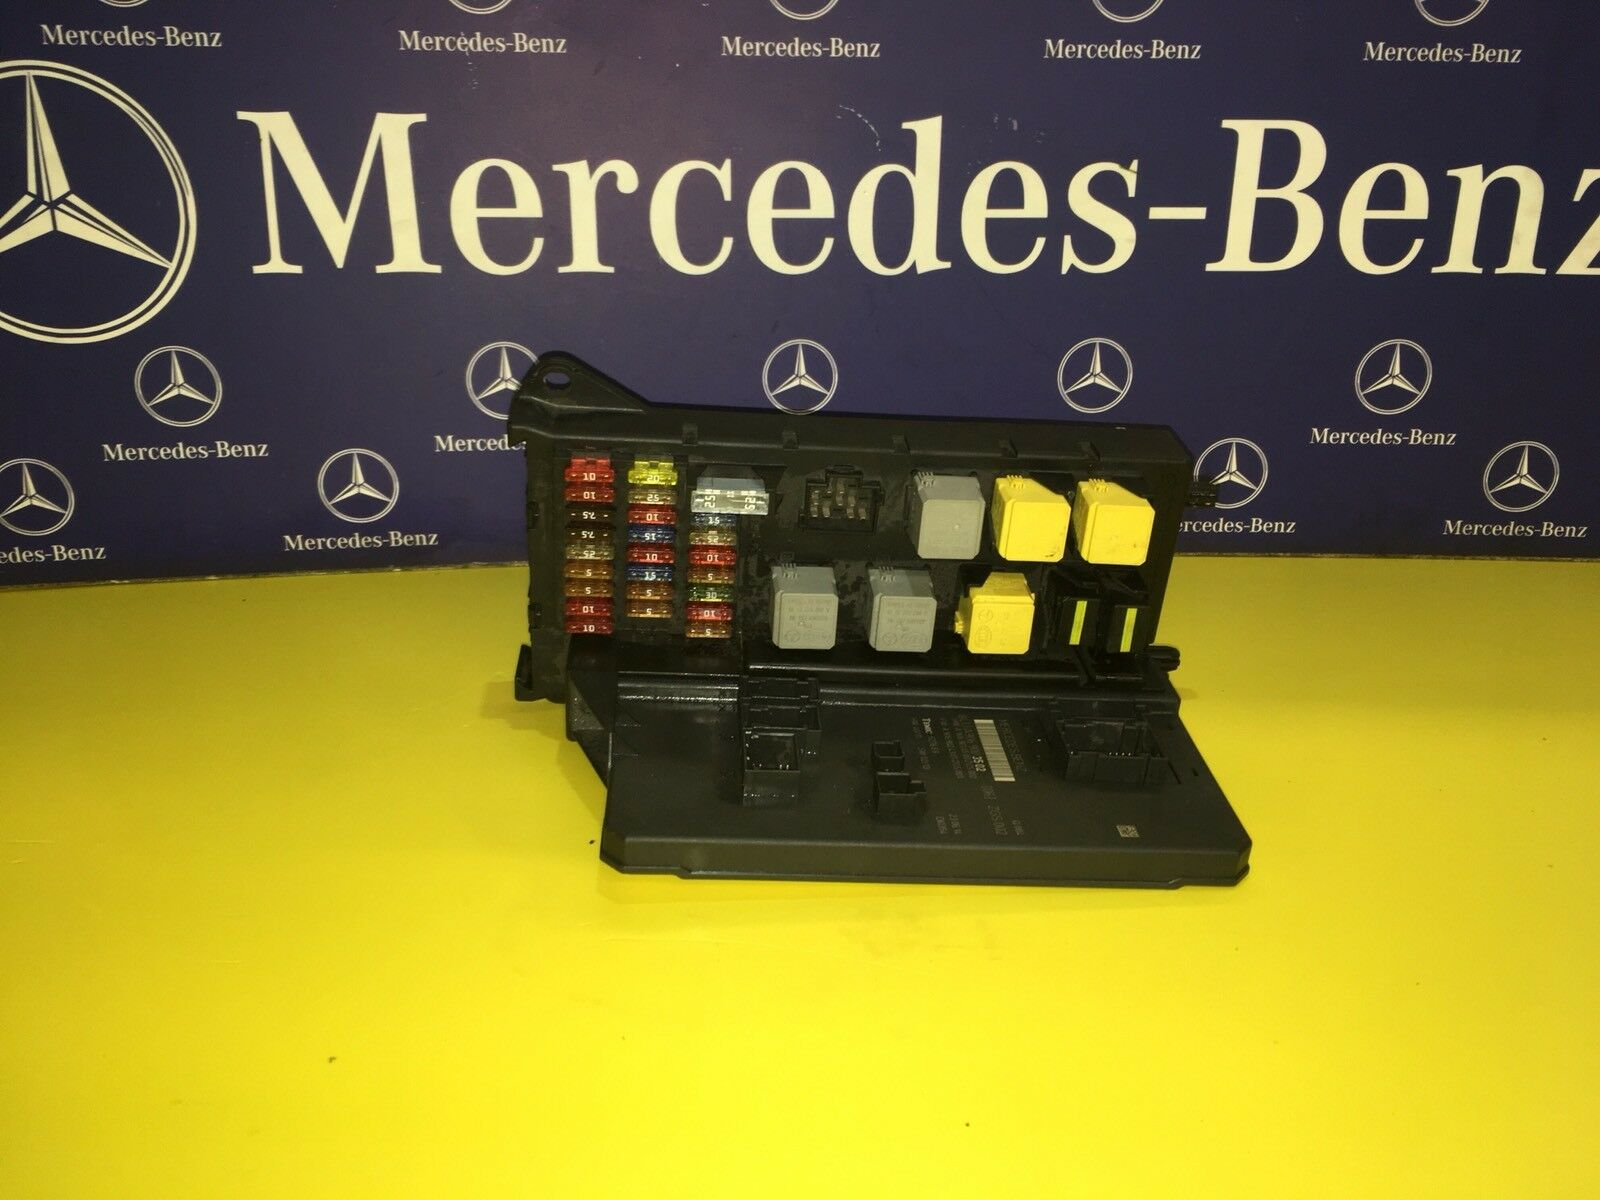 Genuine Mercedes Sprinter Fuse Box Sam Unit A9069006303 With A Month Warranty 1 Of 5only 4 Available